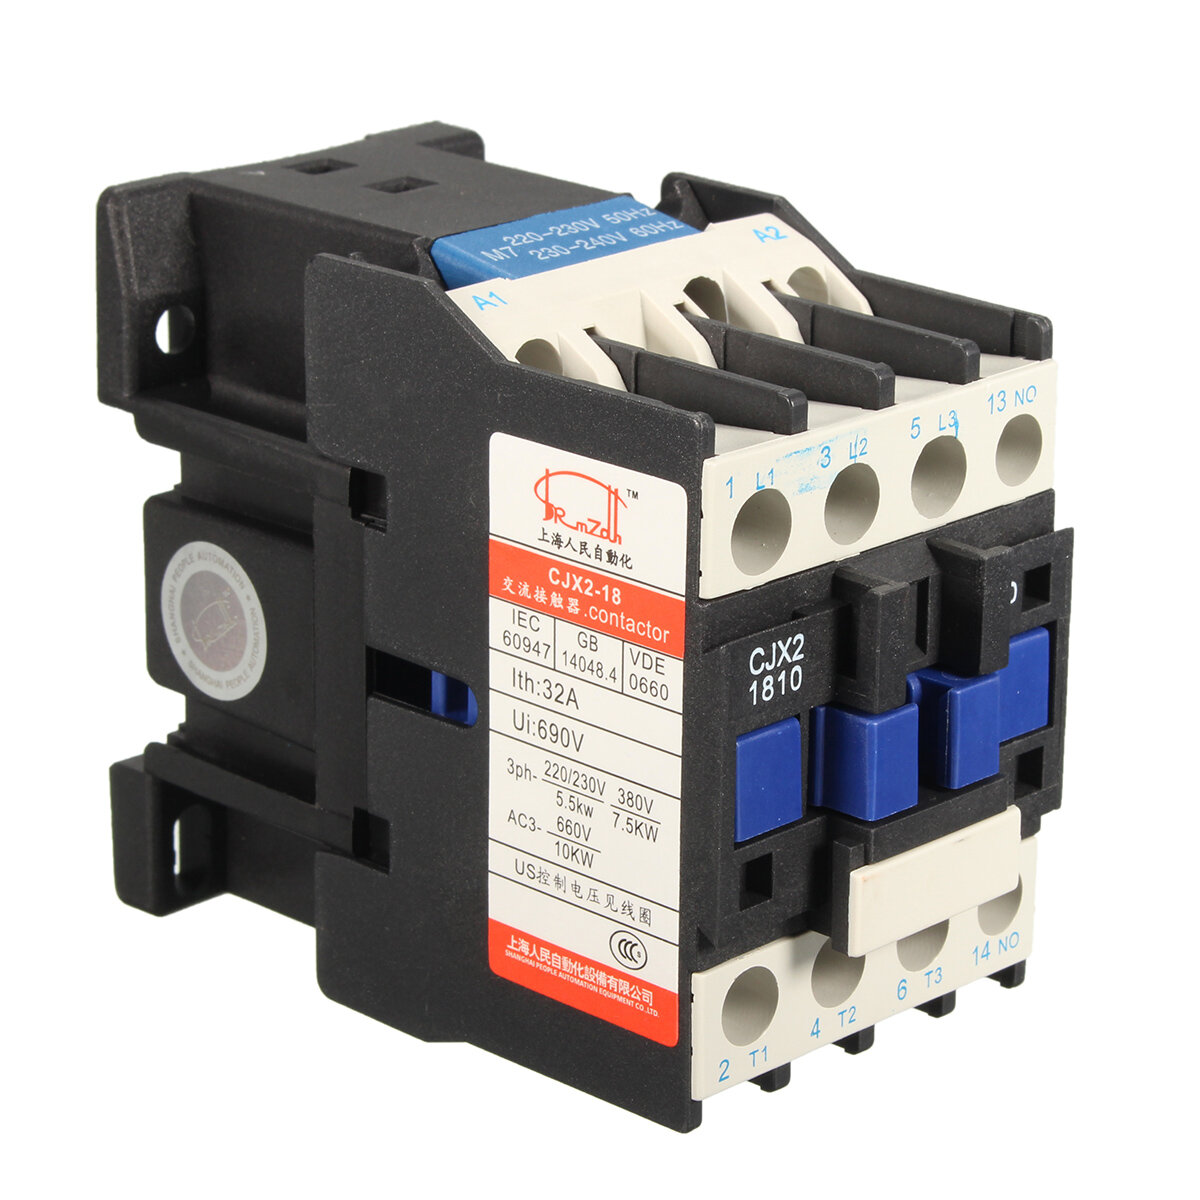 ac contactor ac220v coil 32a 3 phase 1no 50 60hz motor starter relayac contactor ac220v coil 32a 3 phase 1no 50 60hz motor starter relay lc1 d1810 cod